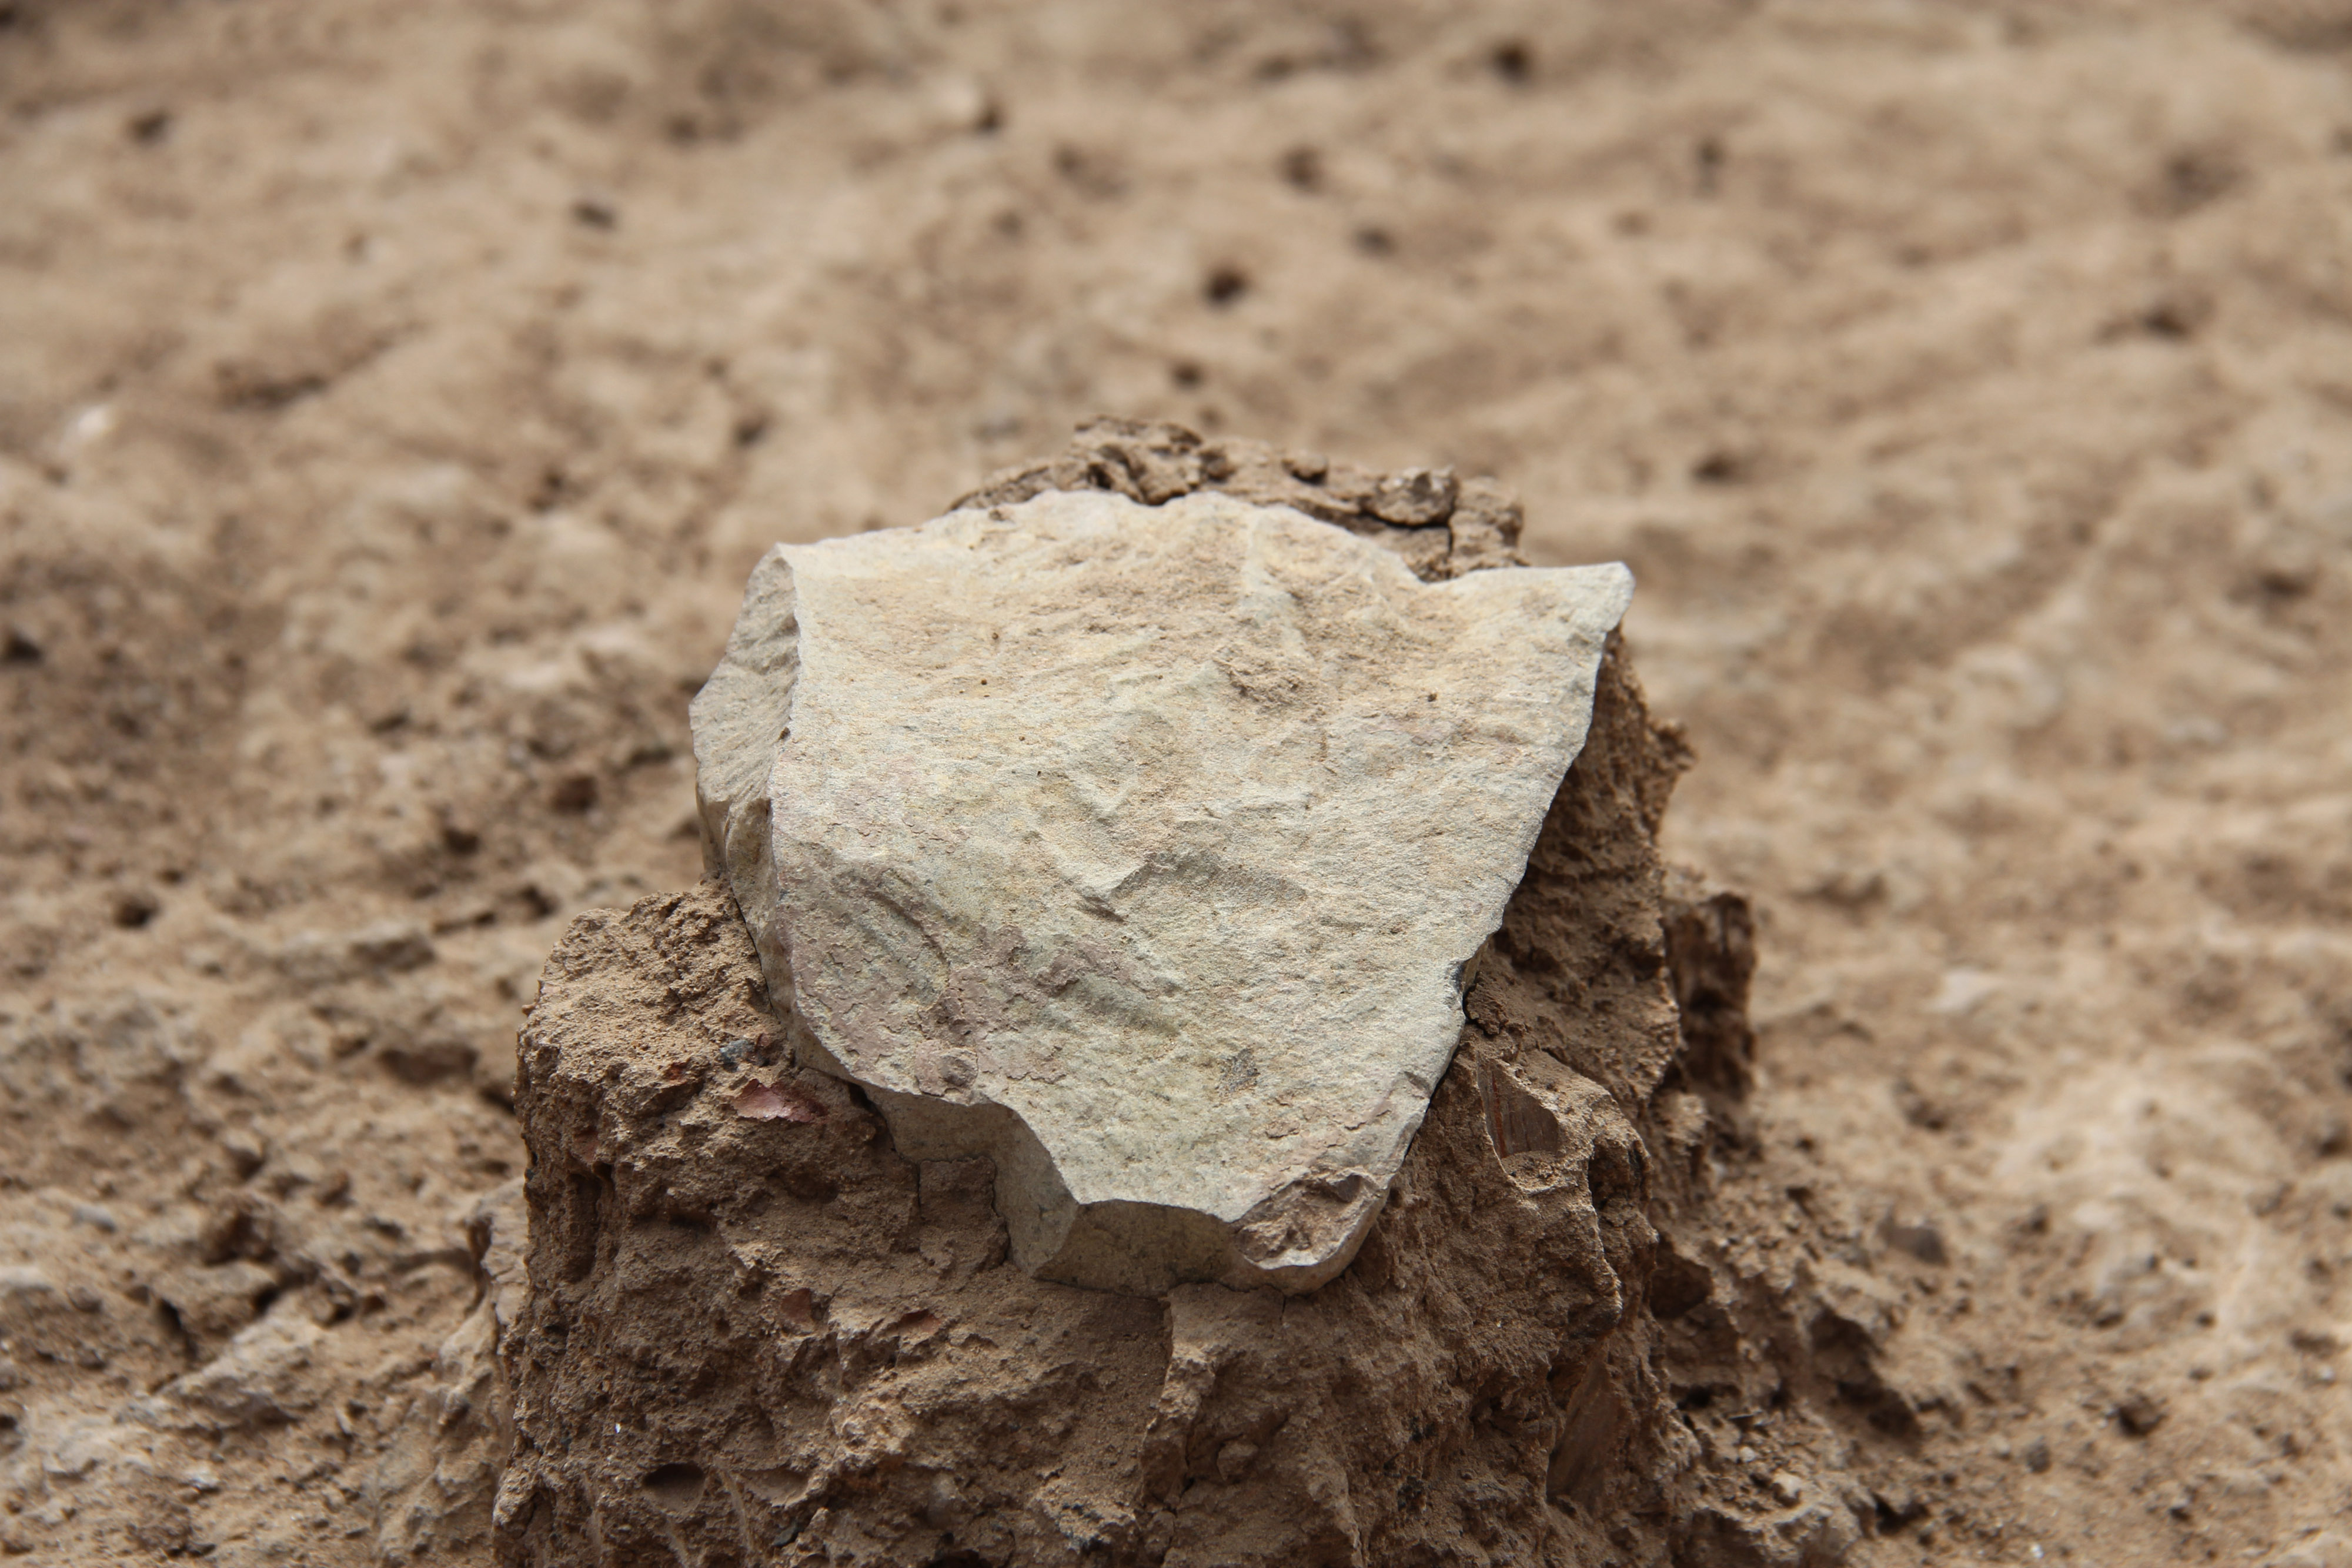 This undated photo made available May 20, 2015 by the Mission Prehistorique au Kenya - West Turkana Archaeological Project shows the excavation of a stone tool found in the West Turkana area of Kenya.